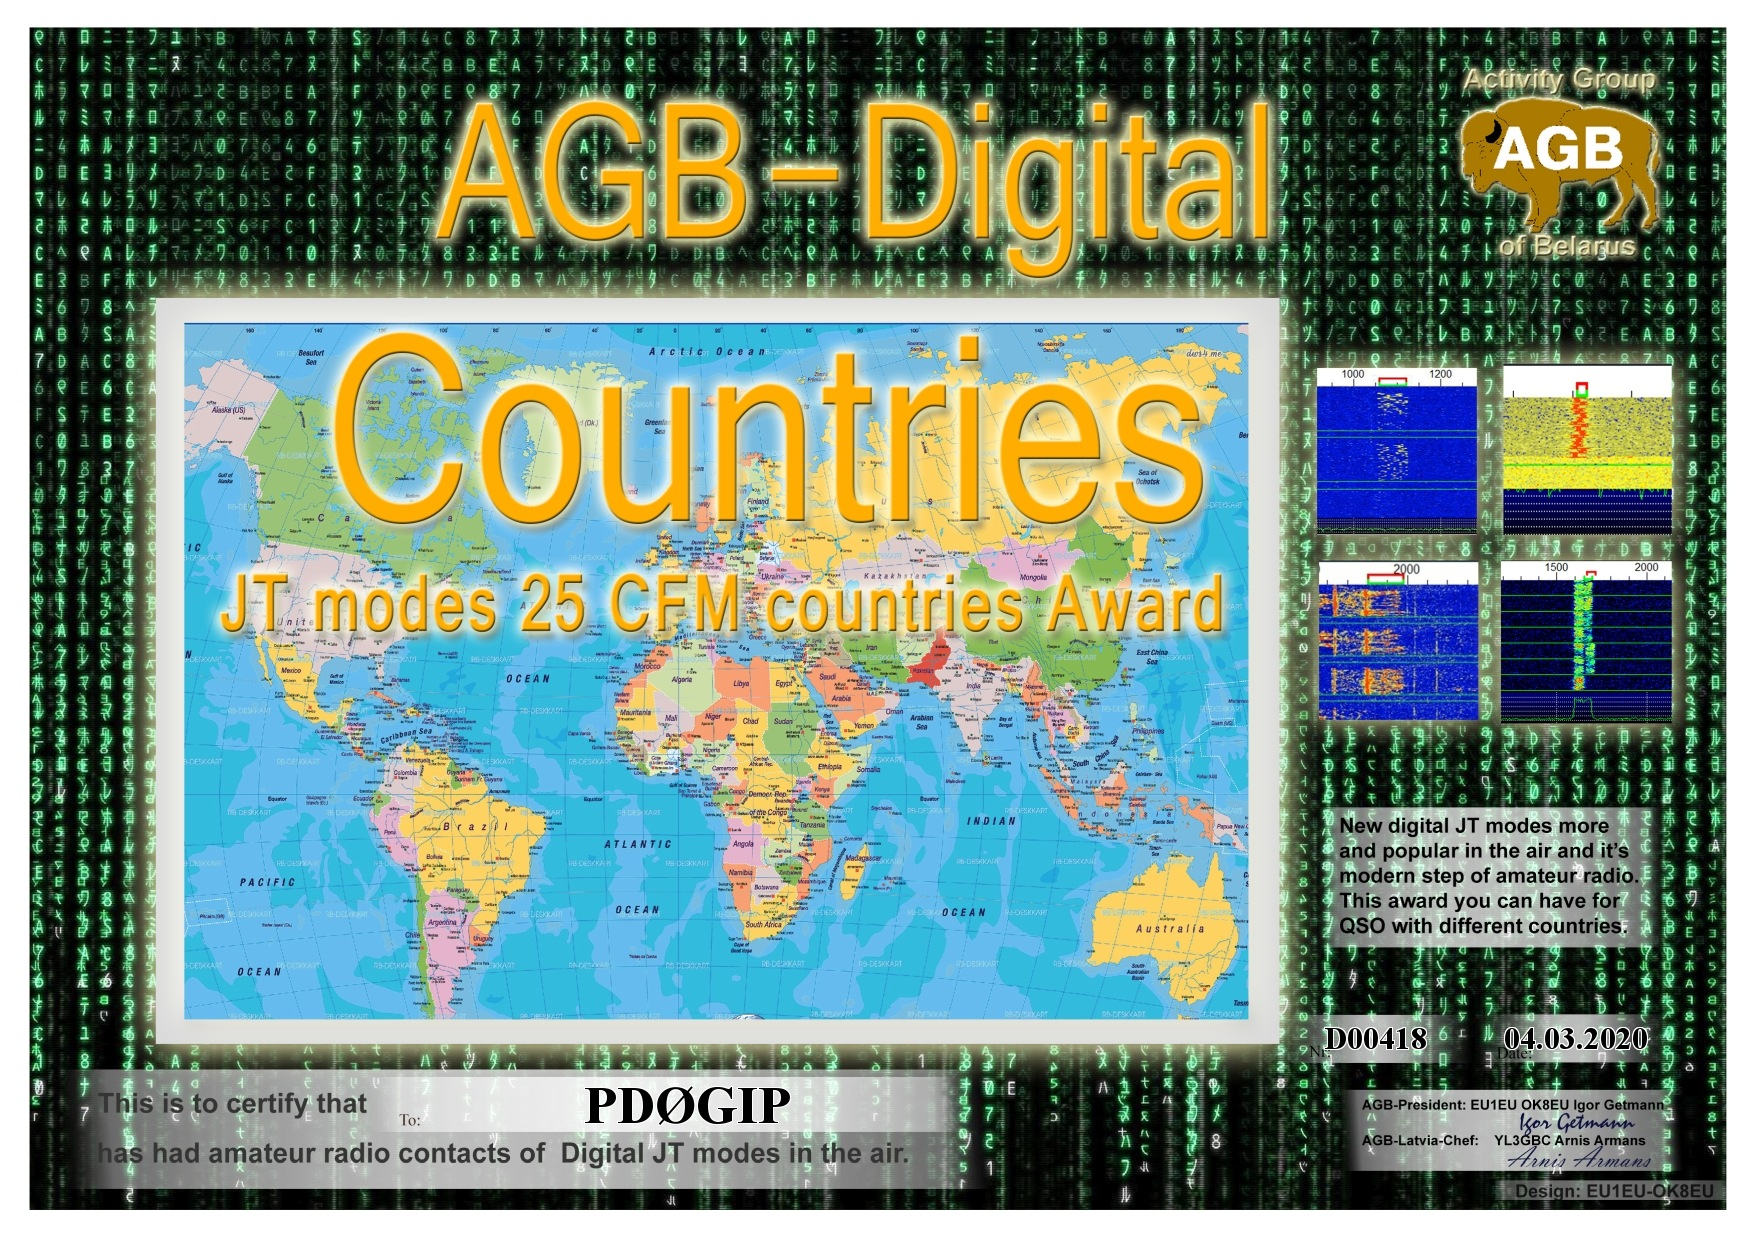 PD0GIP COUNTRIES BASIC 25 AGB